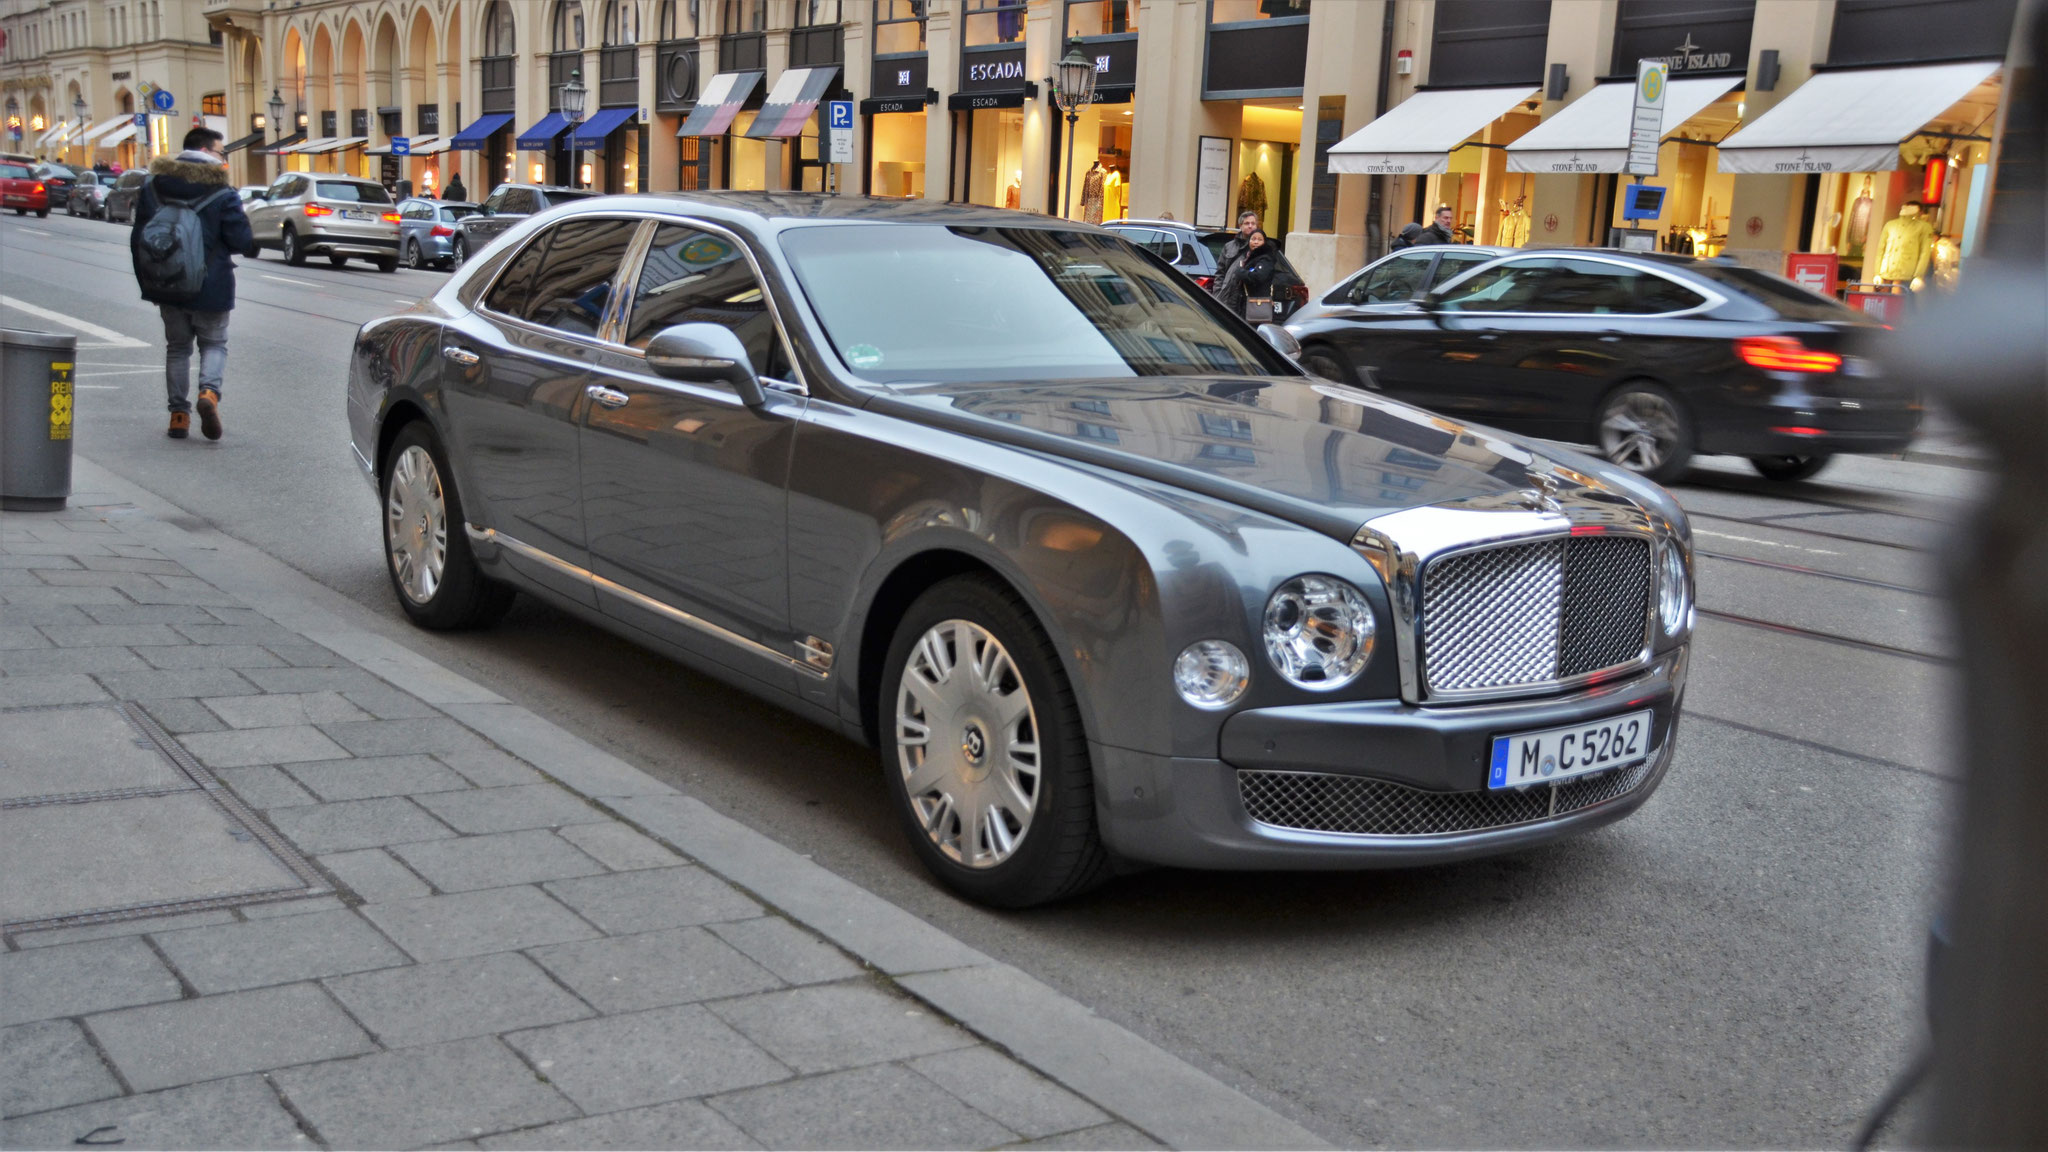 Bentley Mulsanne - M-C-5262